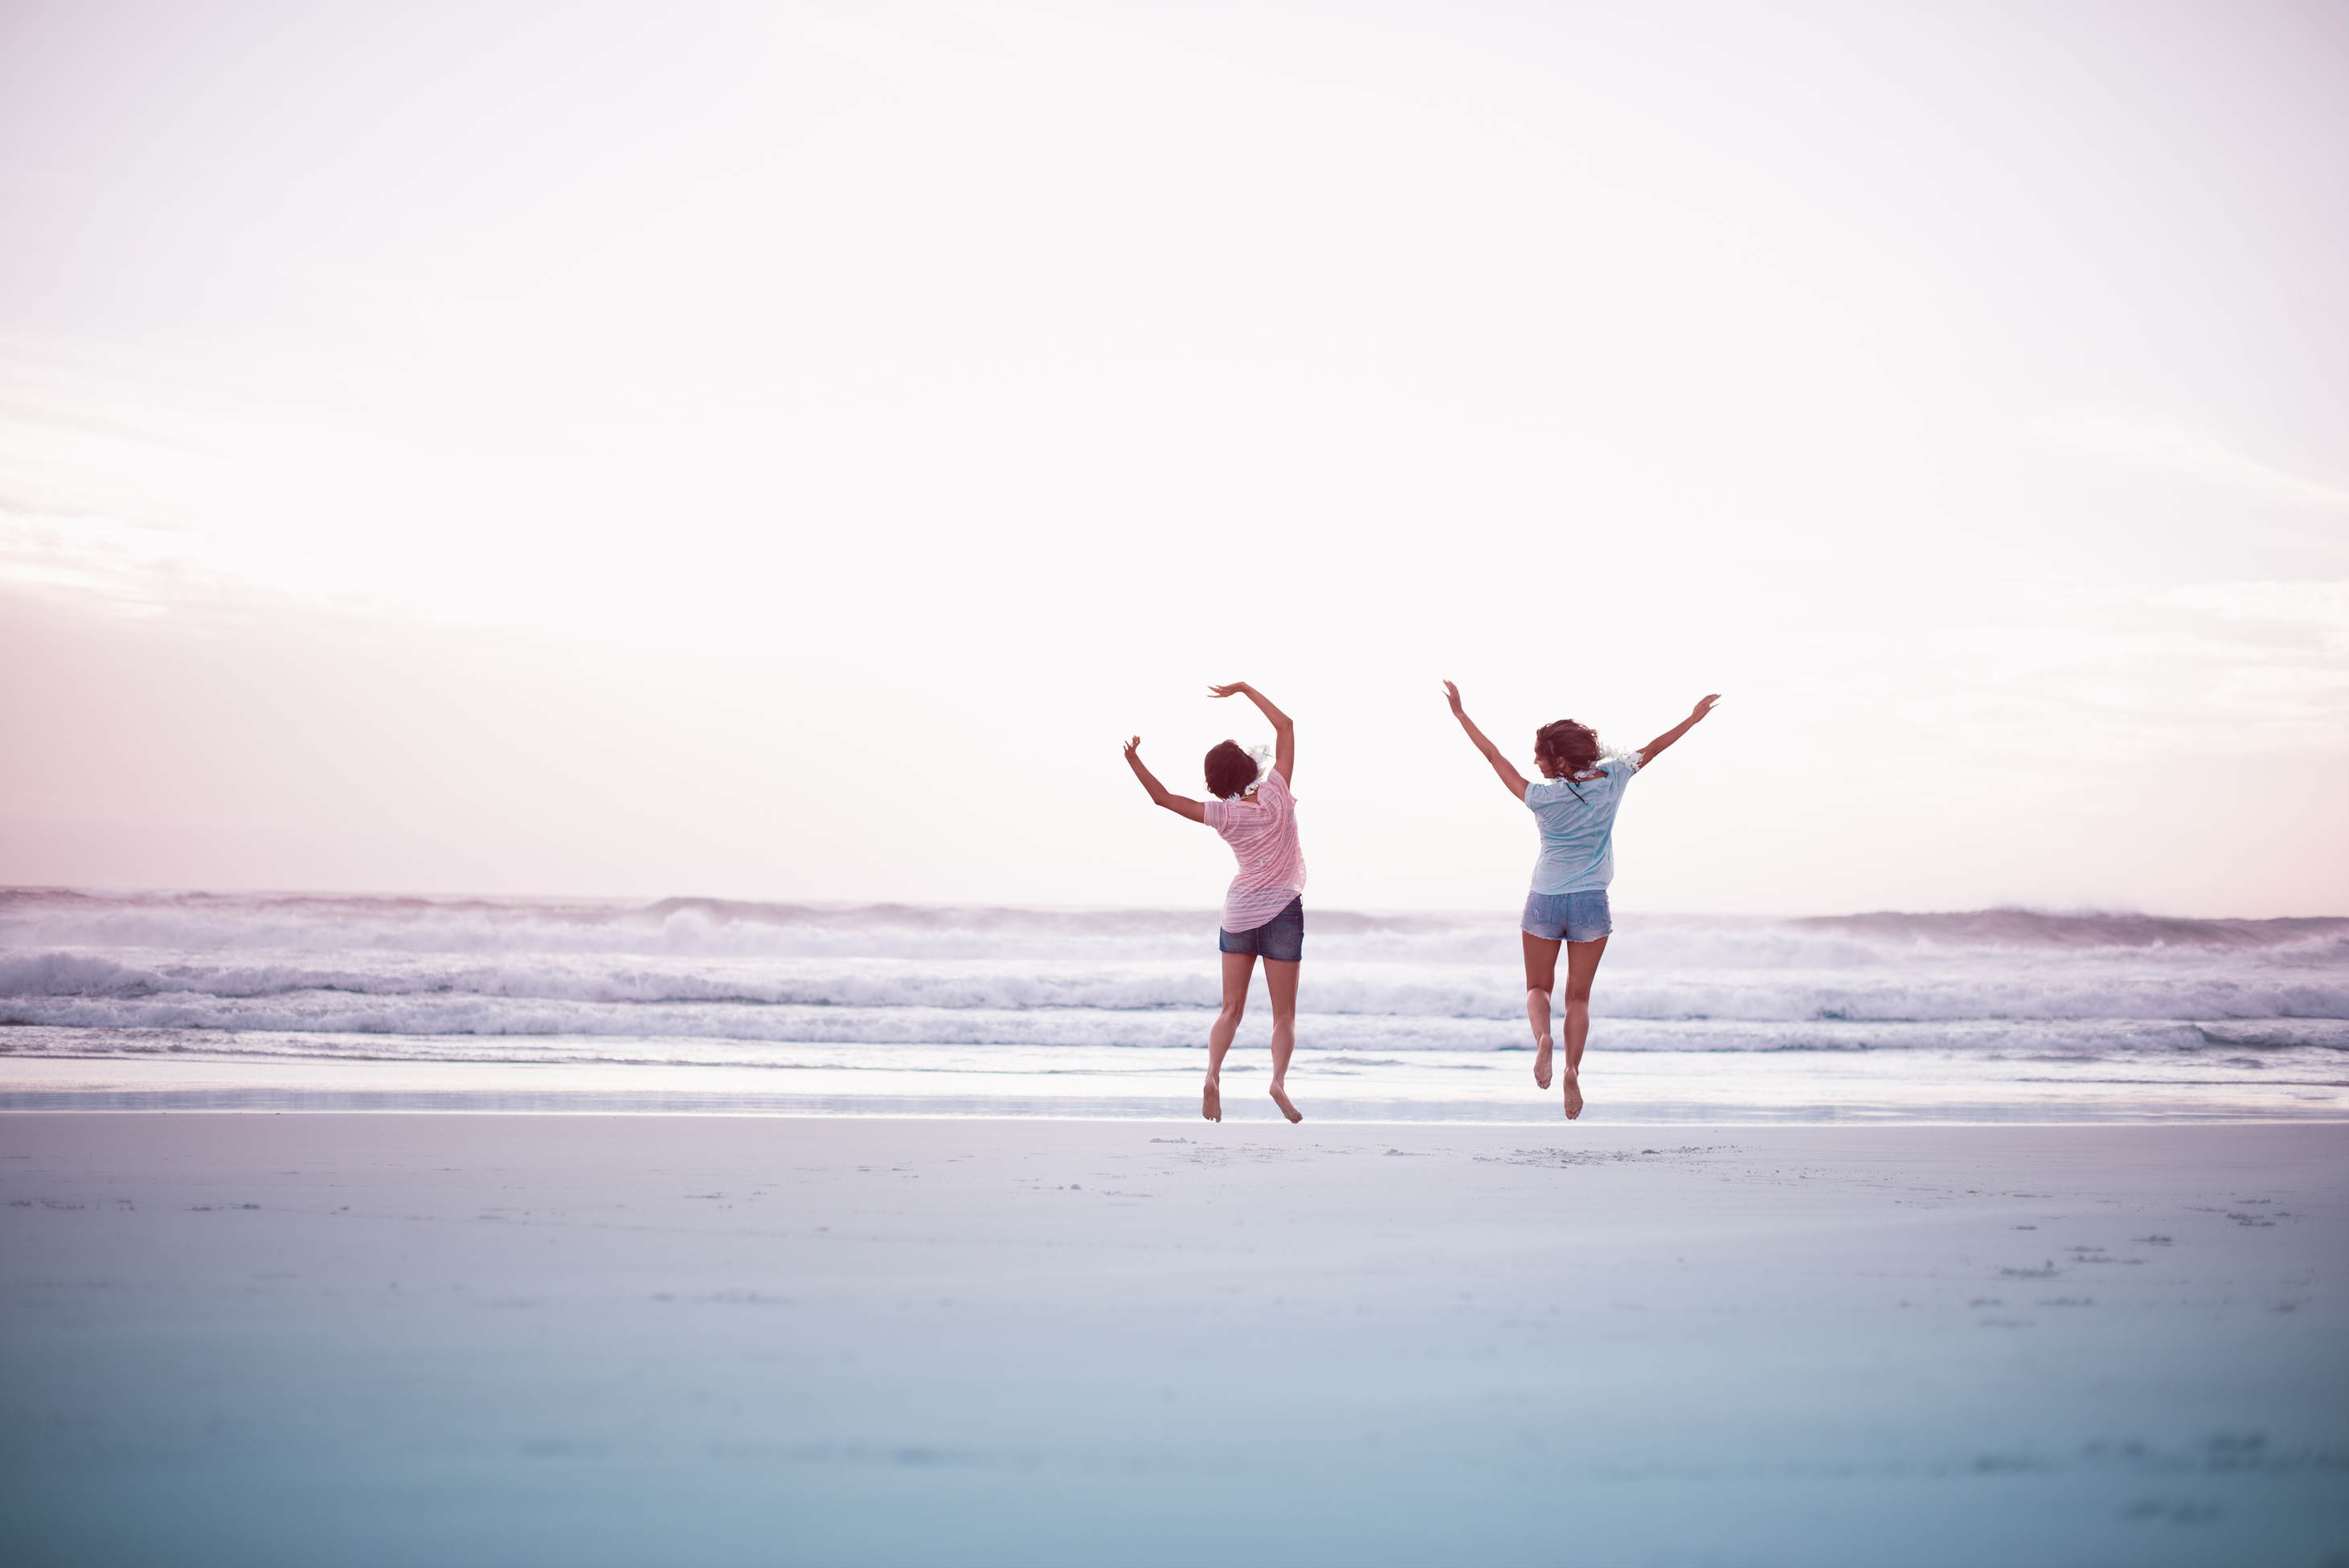 Two Girls Having Fun on the Beach